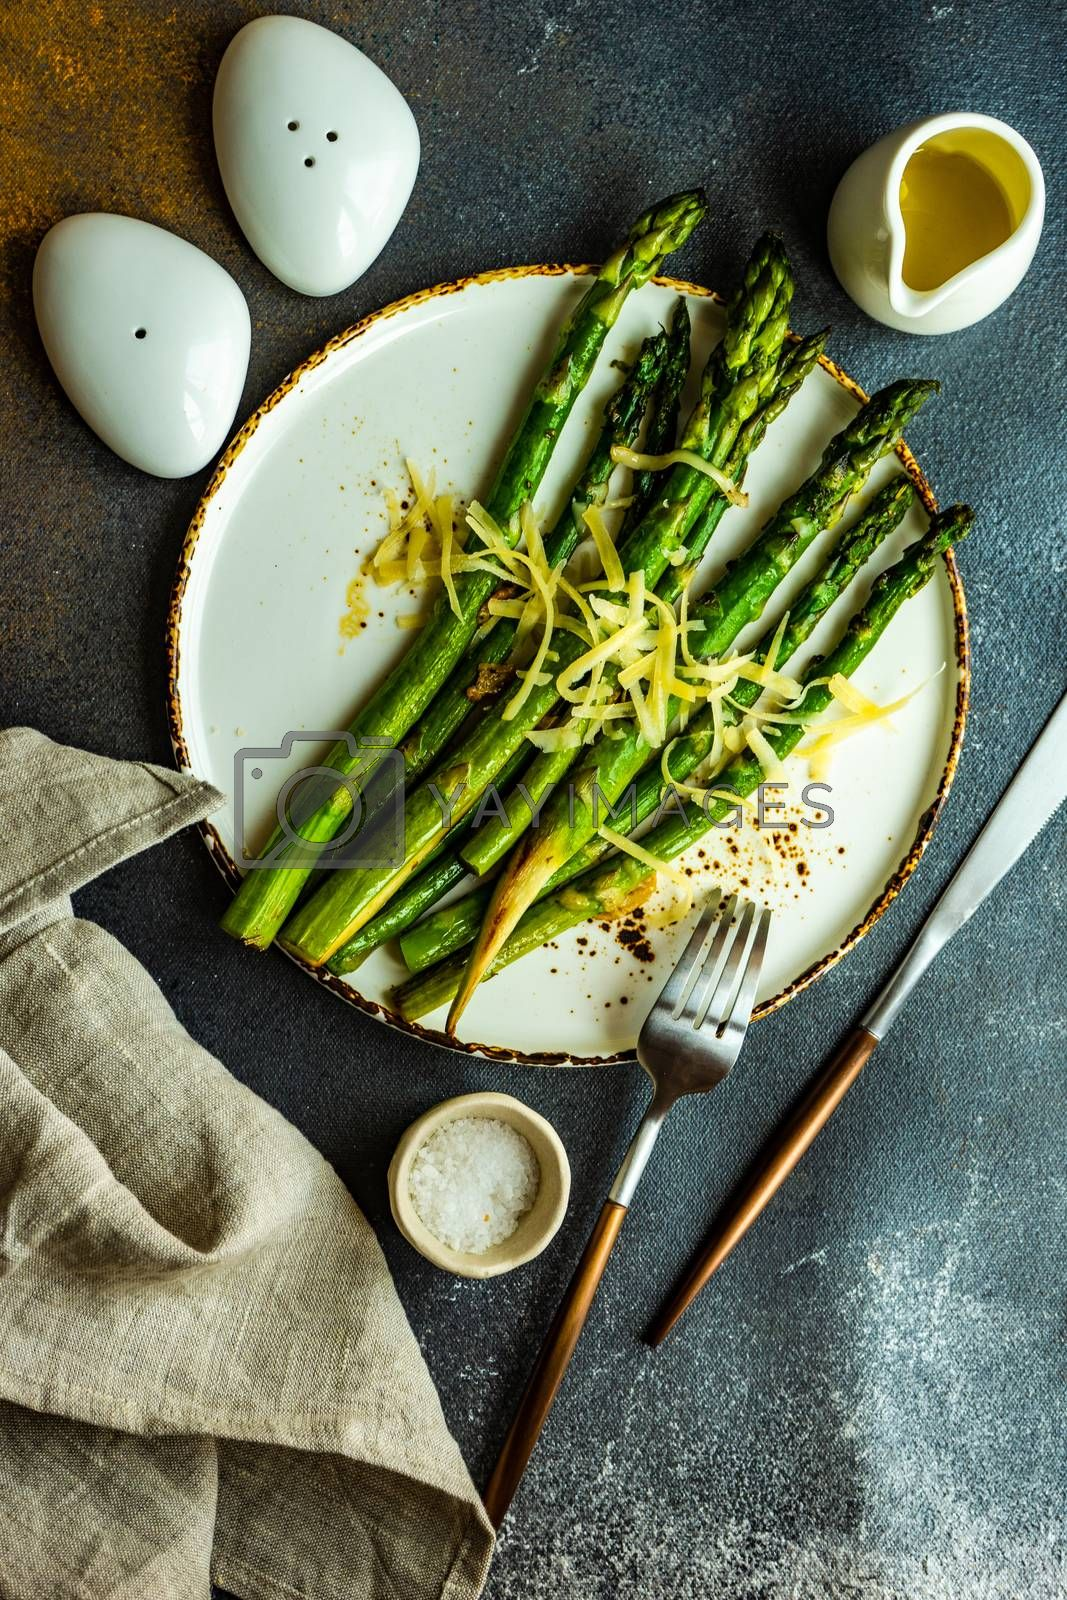 Organic grilled asparagus served for healthy keto lunch on stone background with copy space